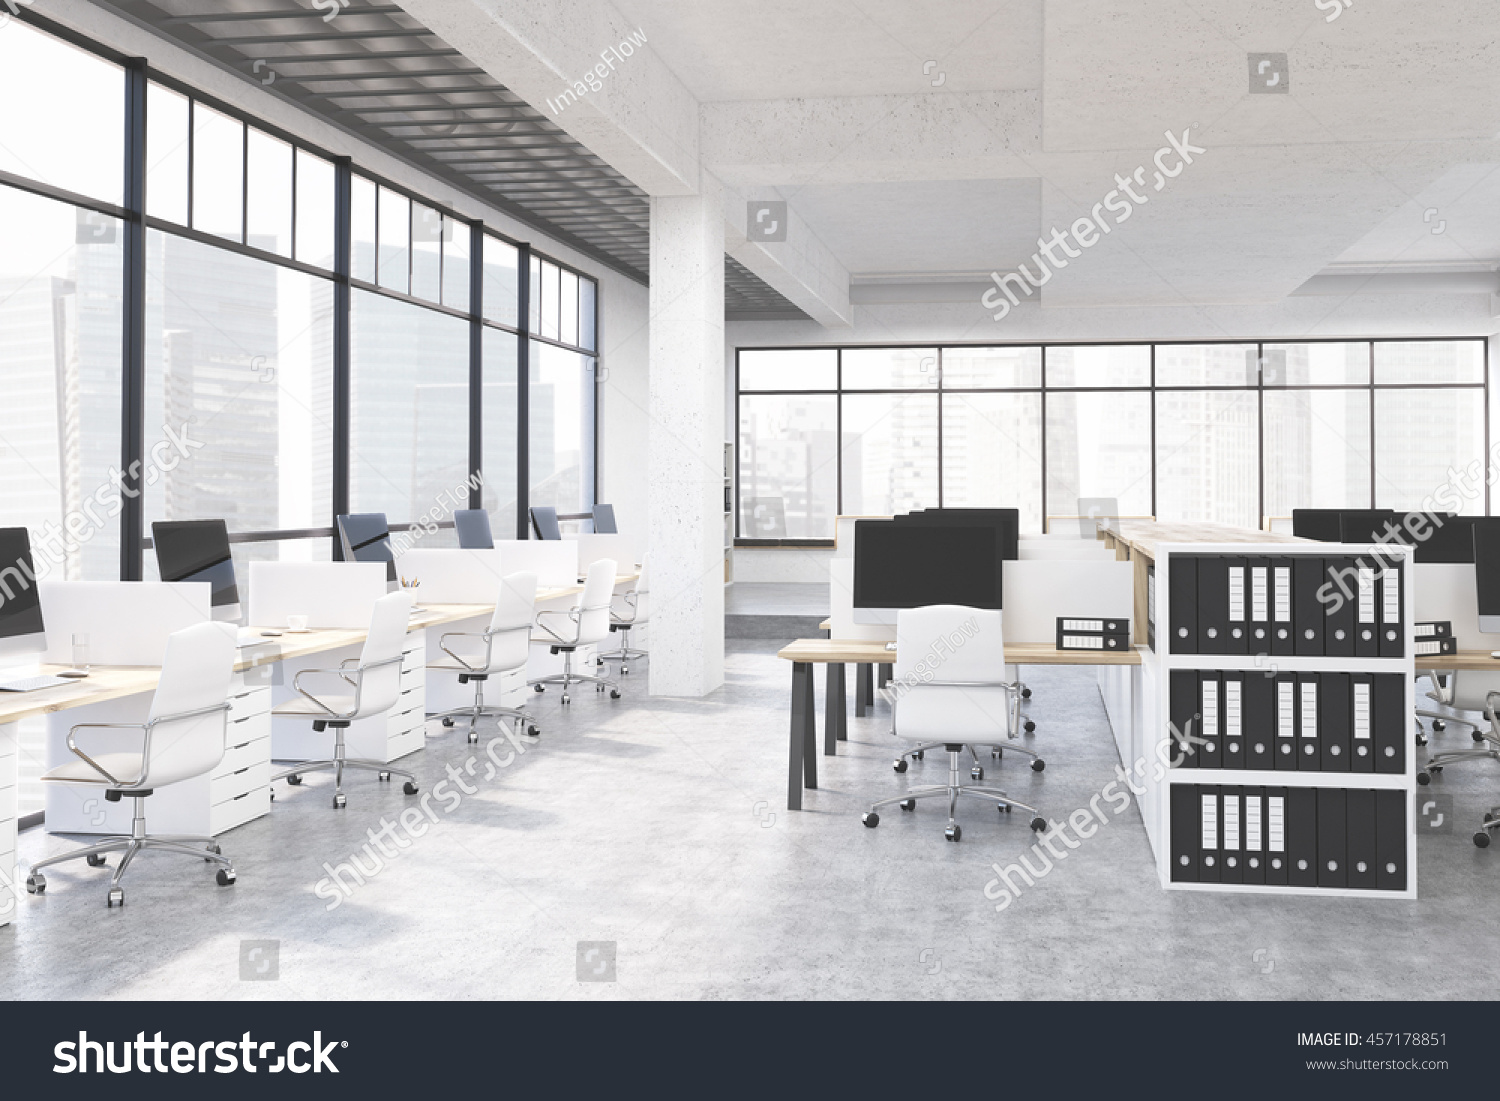 Large office workplace in clean modern style. Computers on tables. Binders  on shelves.